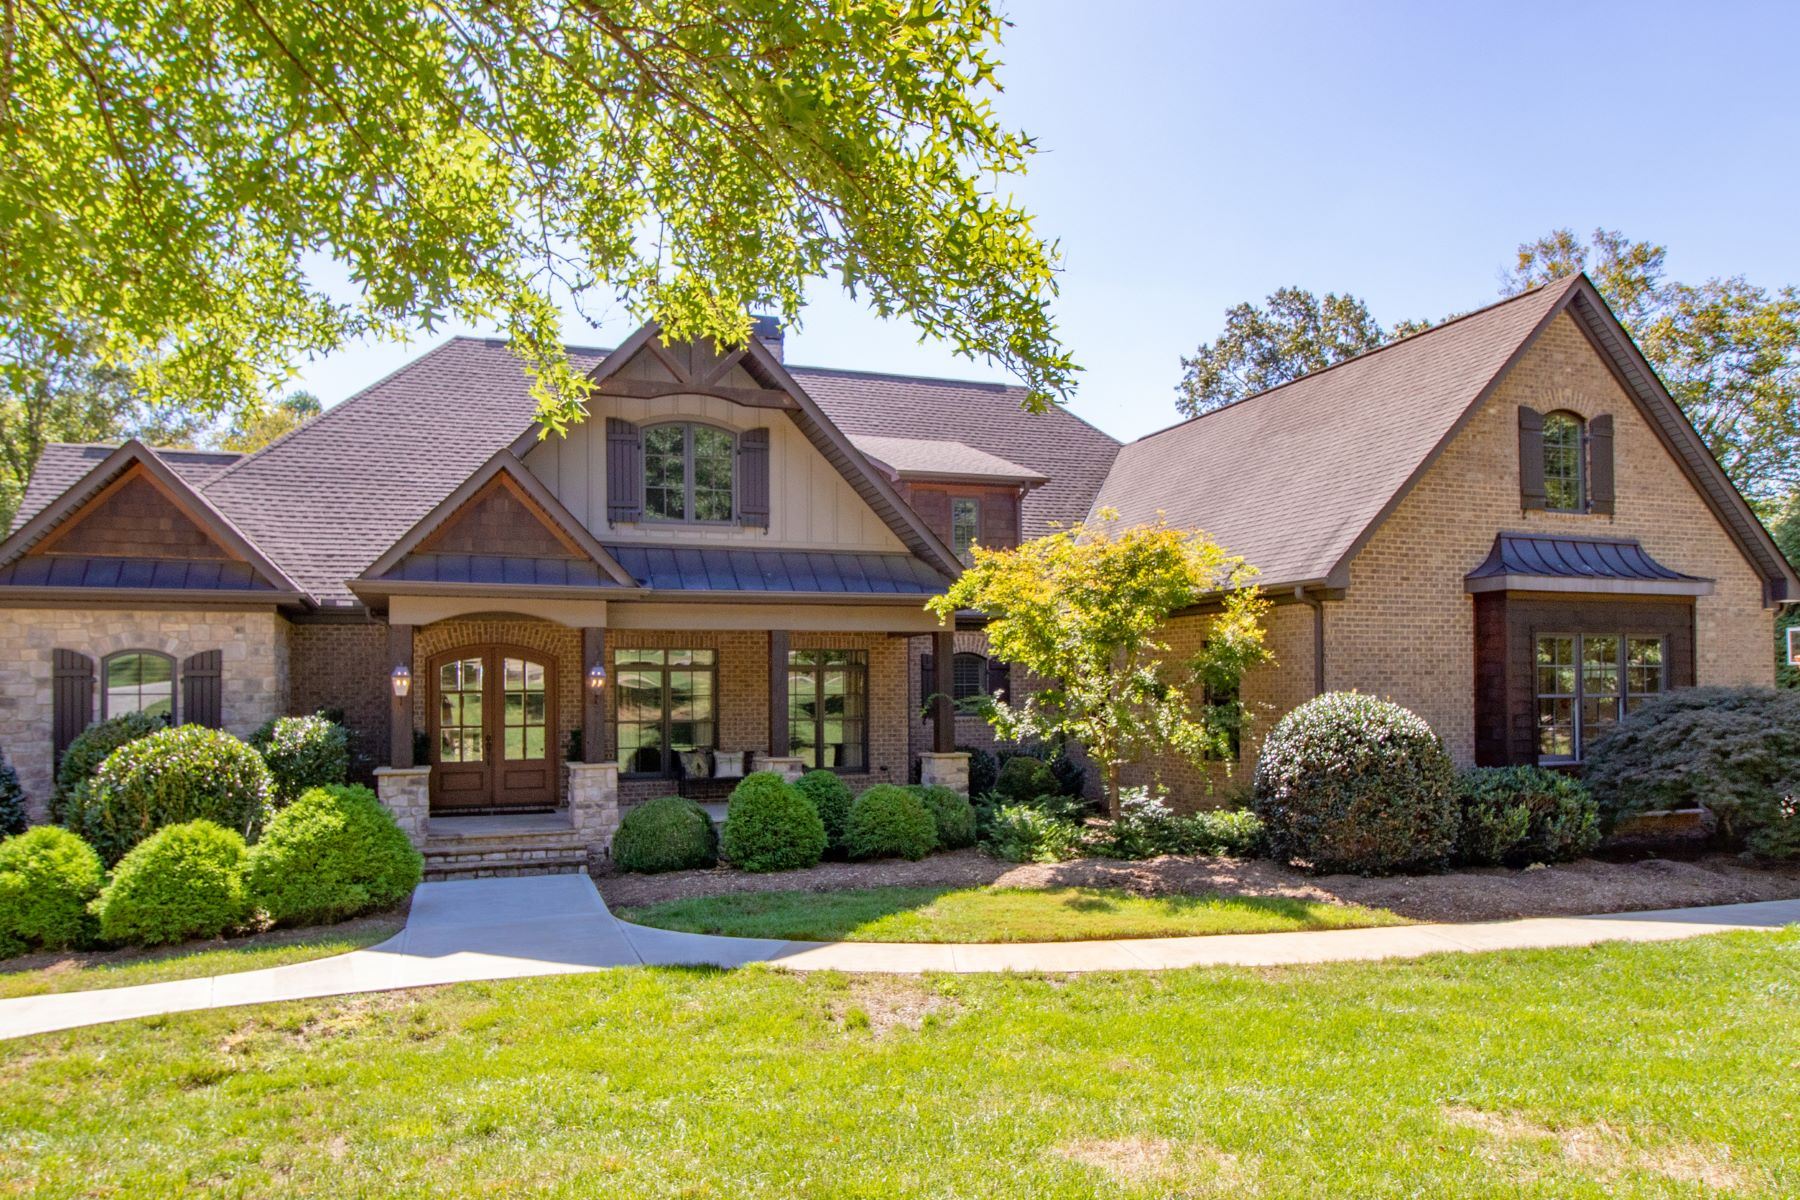 Single Family Homes for Sale at Impeccably maintained estate on 3.16 acres. 117 Pacolet Trail Piedmont, South Carolina 29673 United States